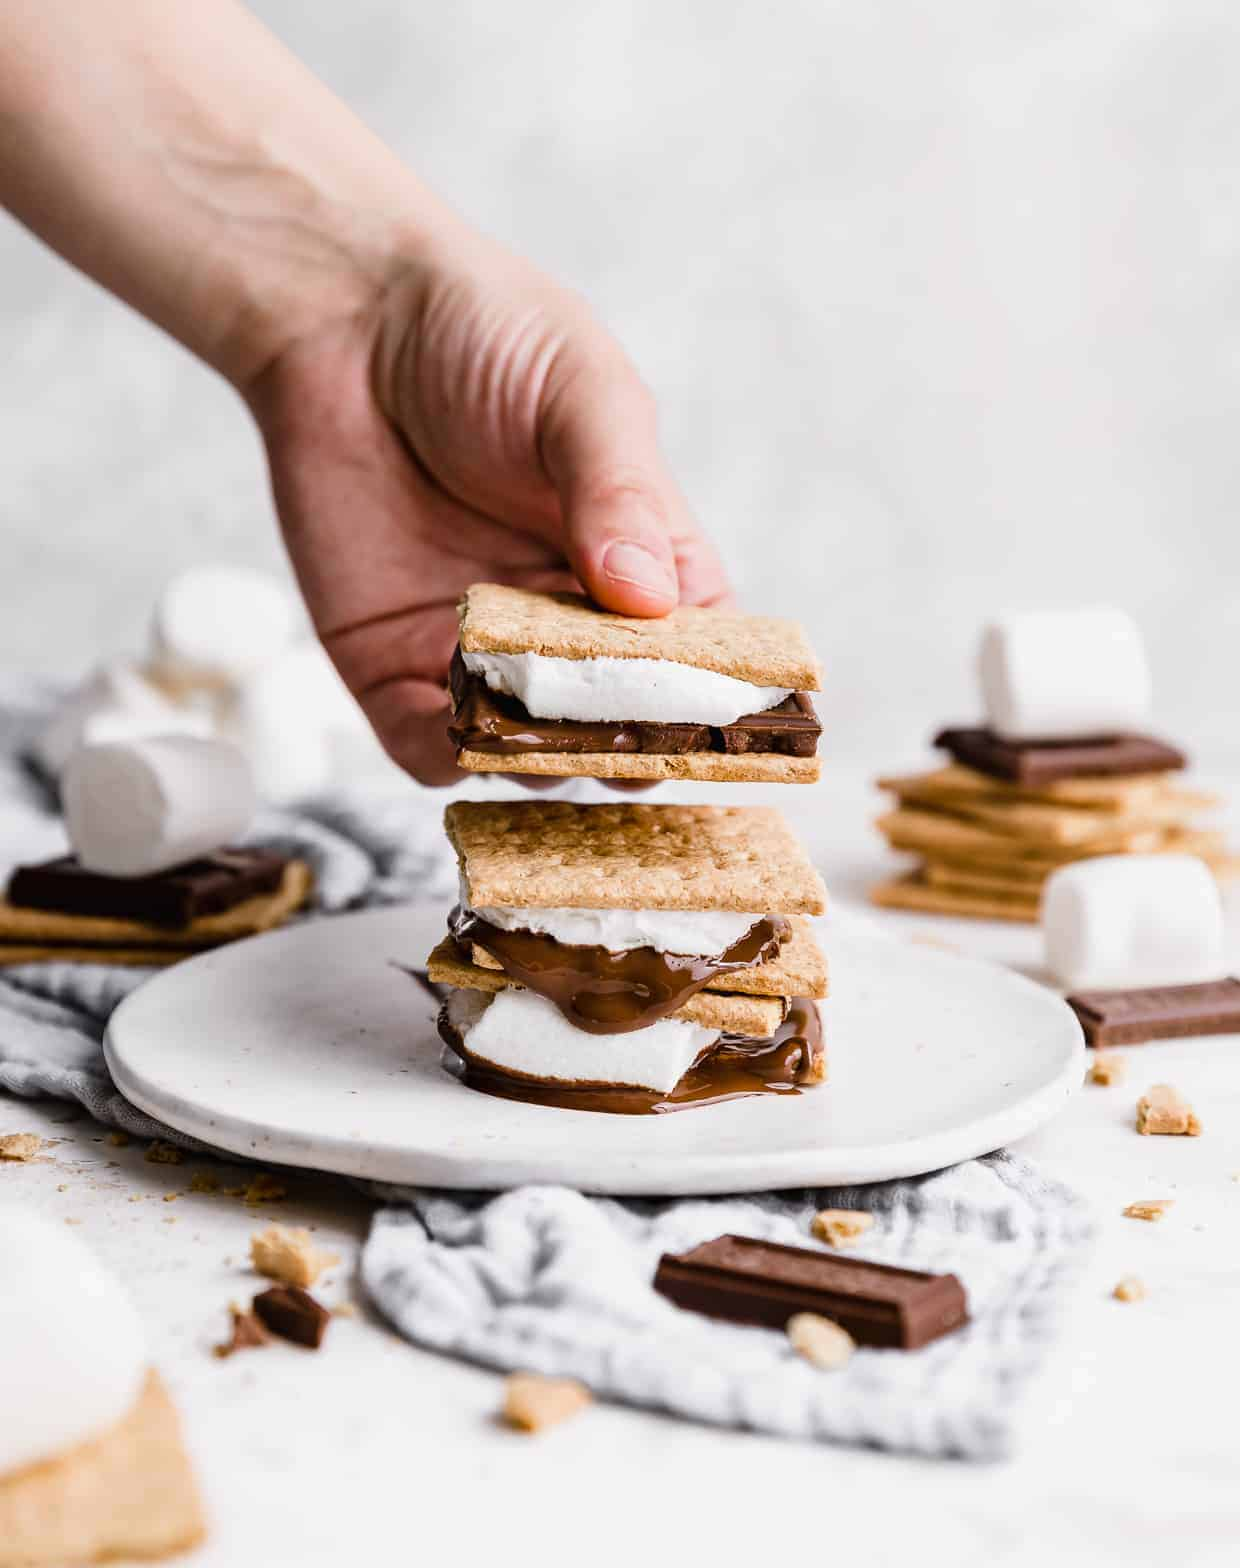 A hand holding a s'more against a white background.